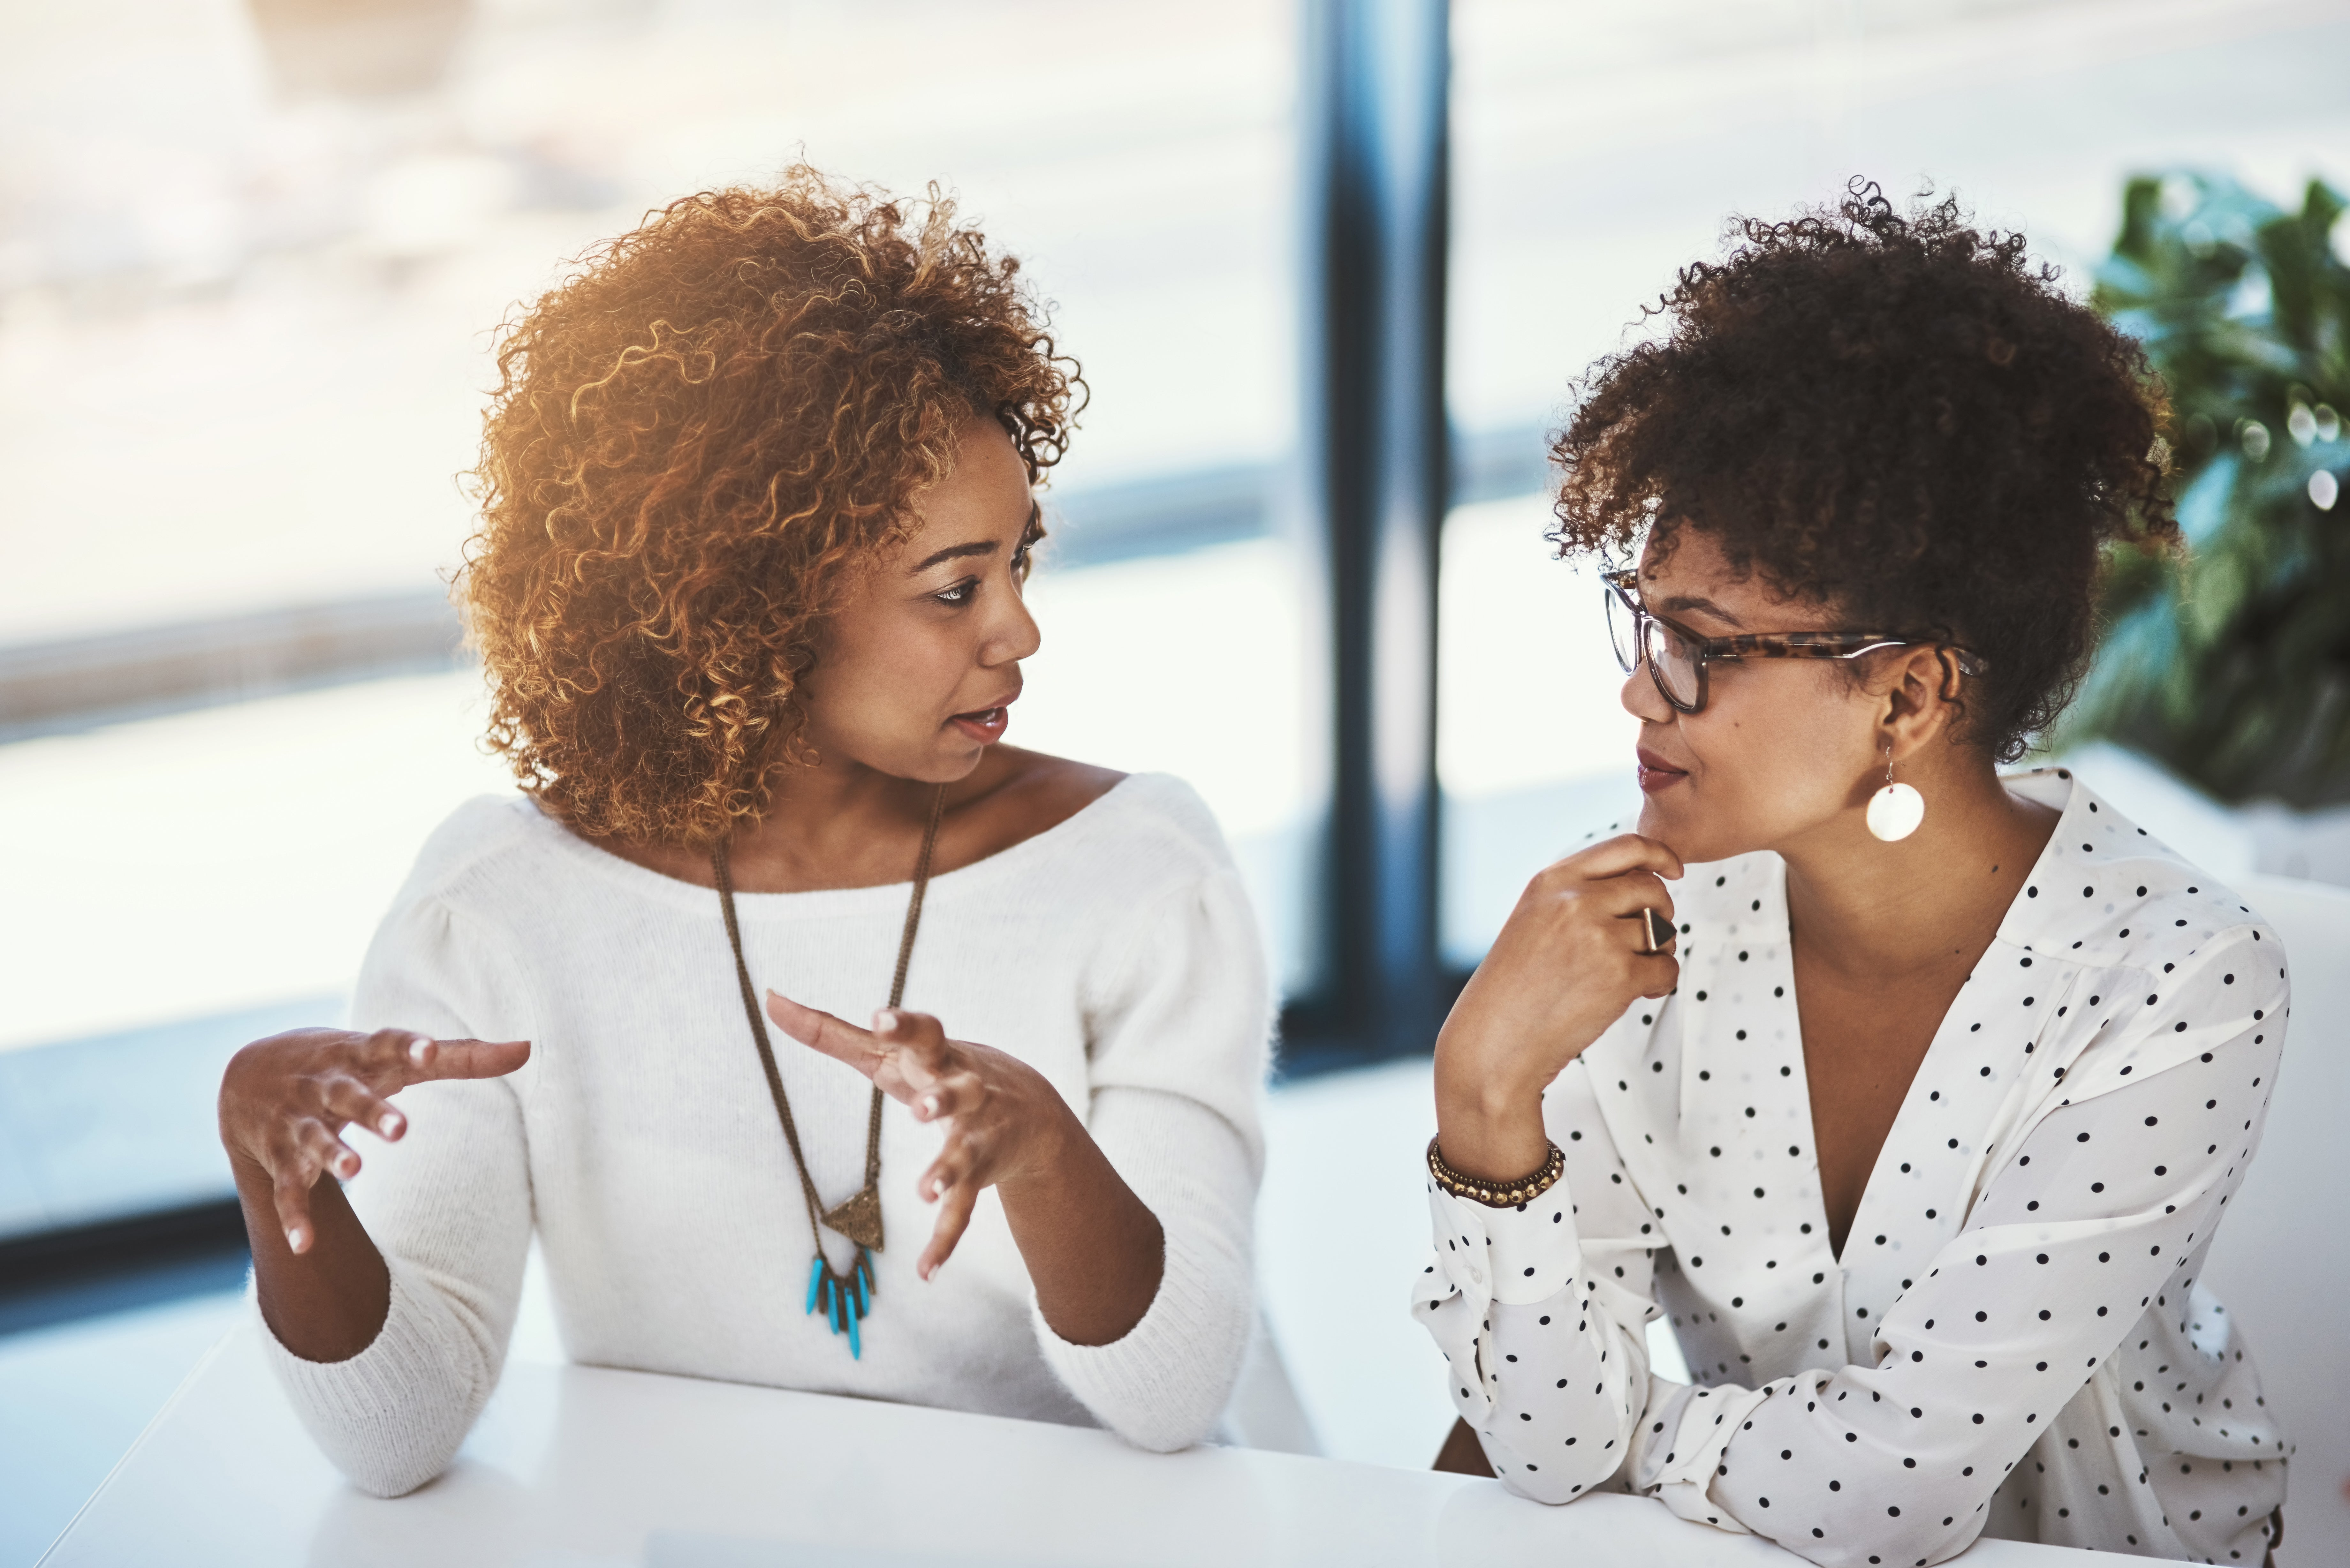 In 2019, Black And Brown Women Dominate The Job Force